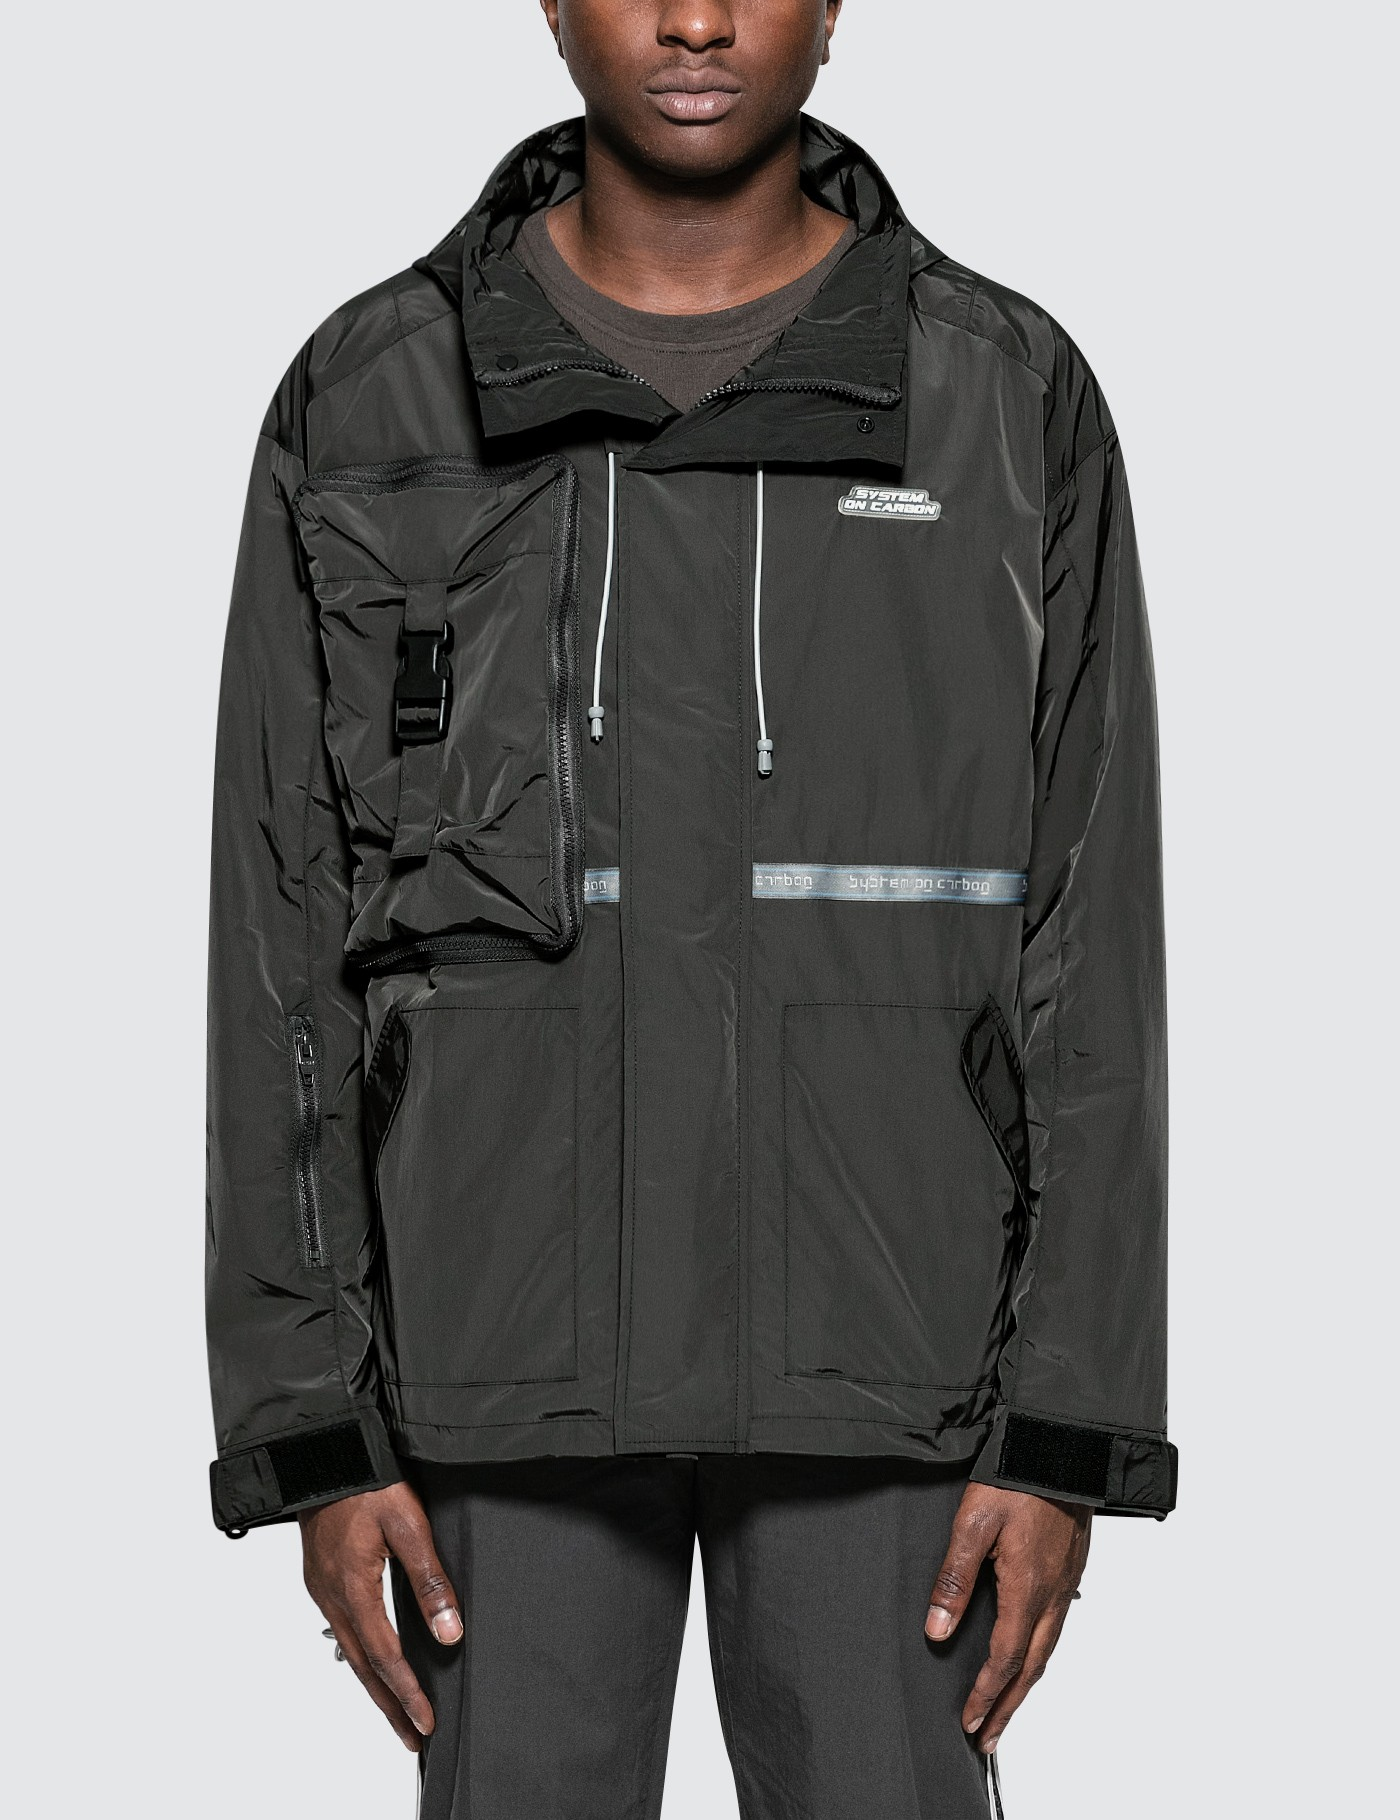 C2H4 Los Angeles Utility Concealed Pocket Data Cable Windbreaker Picture